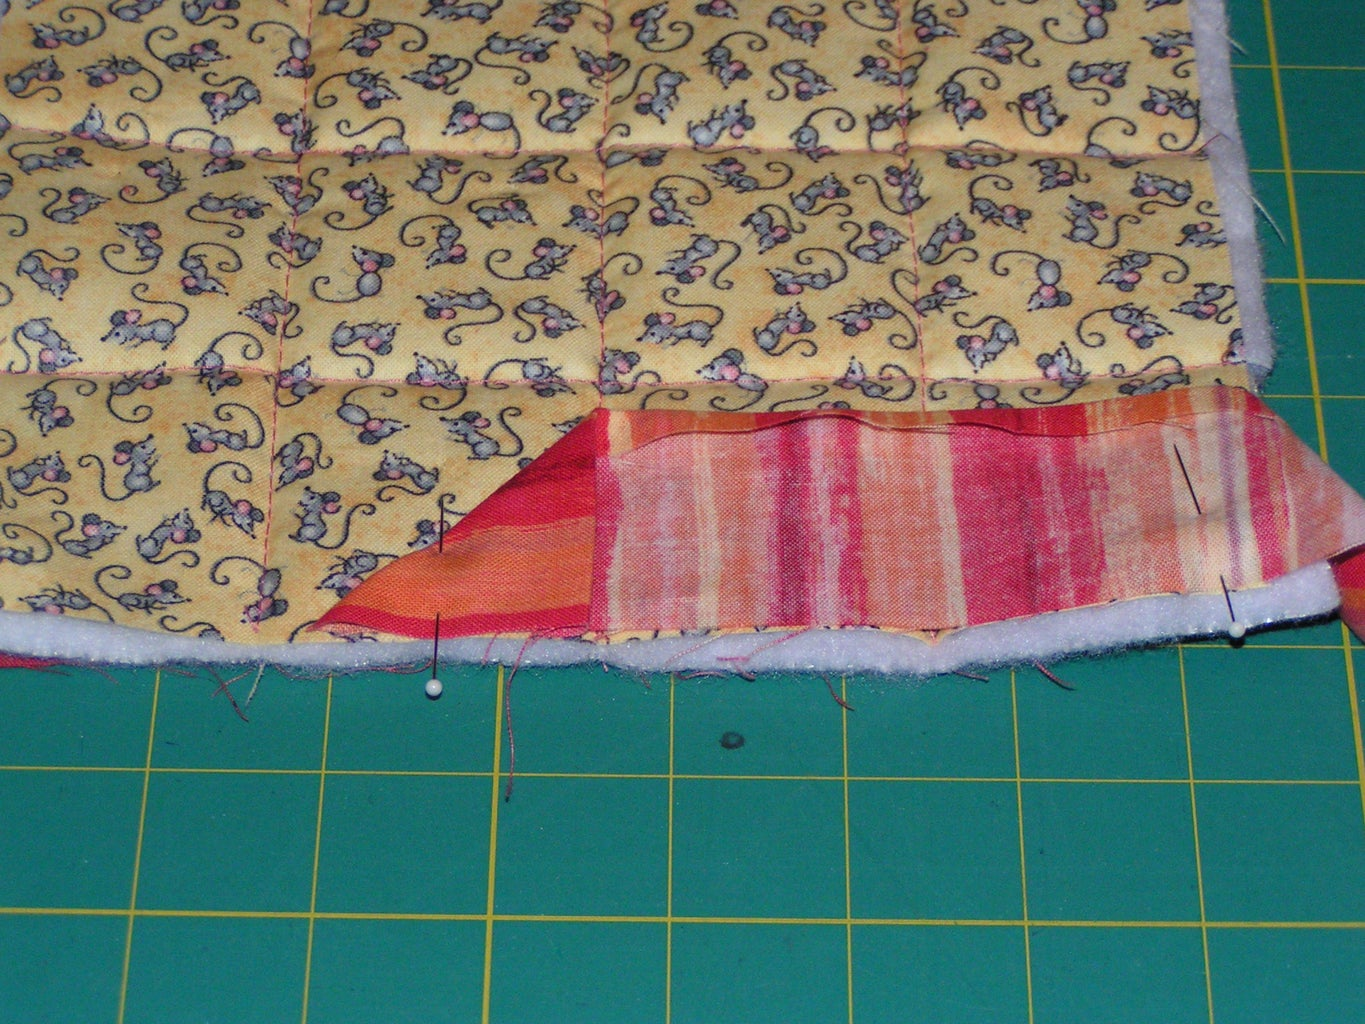 Now Quilt!  (Or Tie), Add Binding